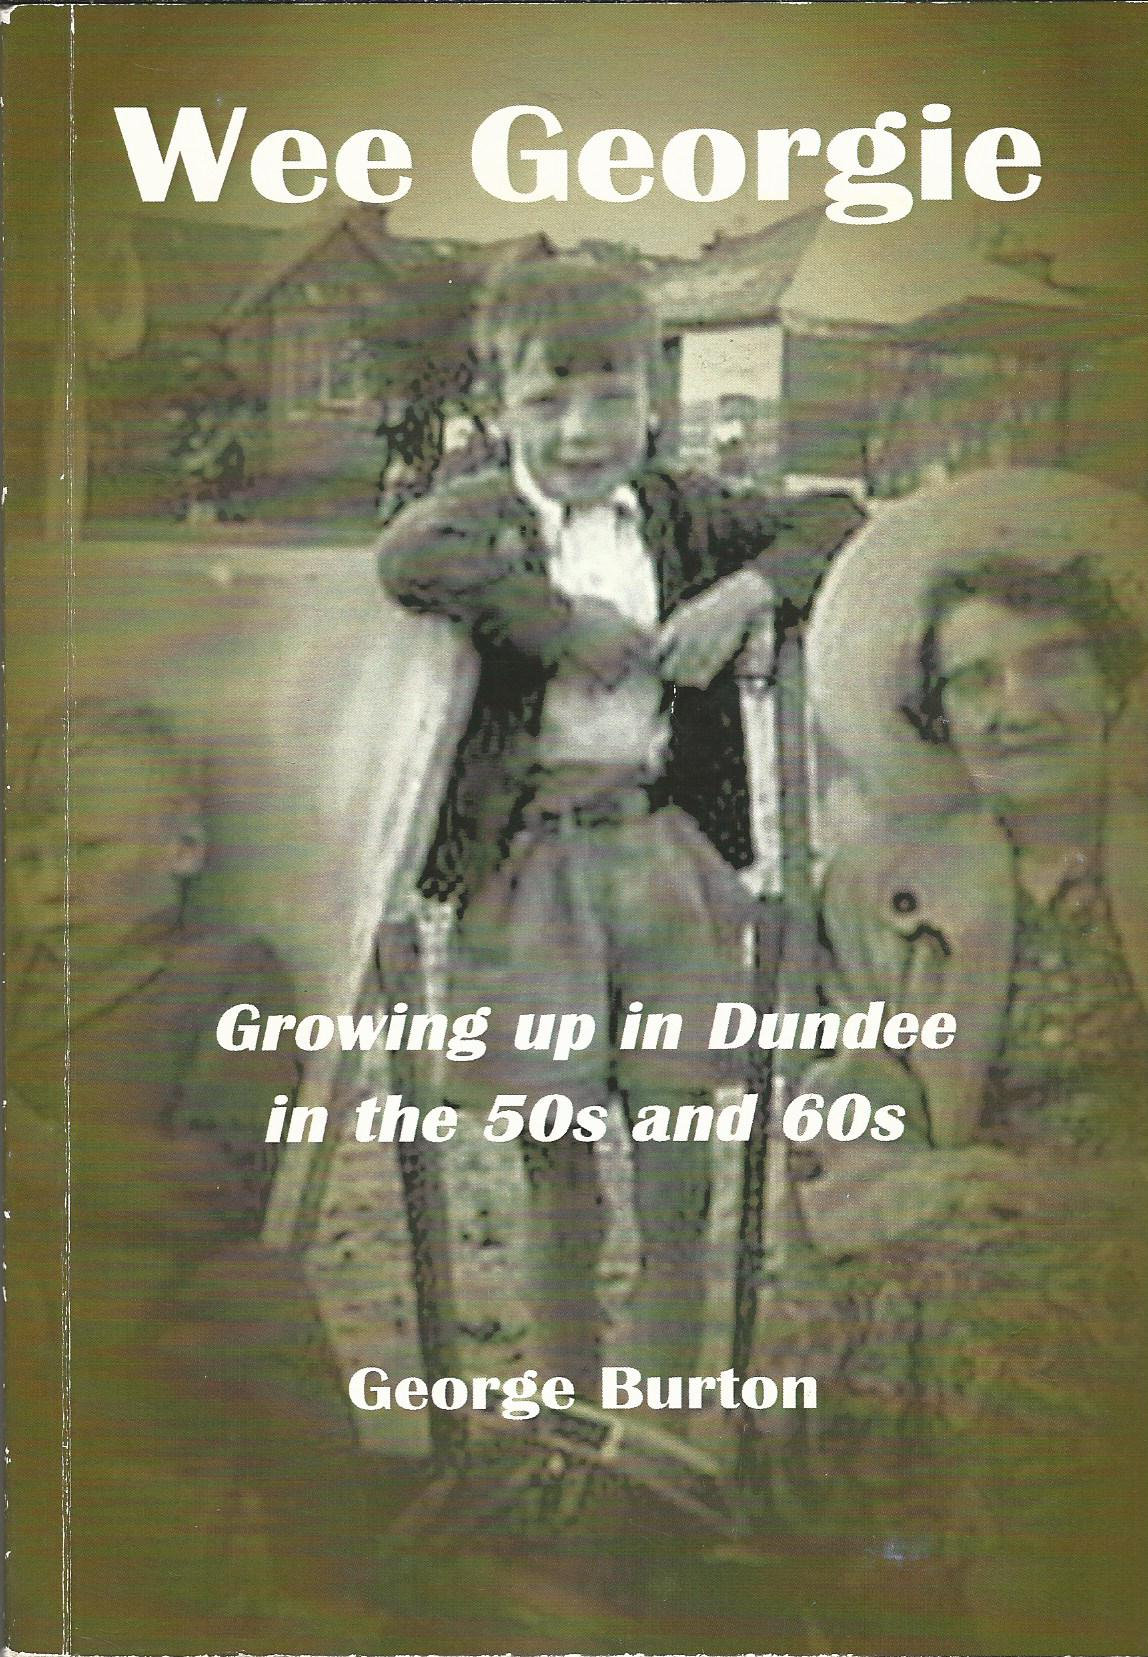 Image for Wee Georgie: Growing up in Dundee in the 50s and 60s.